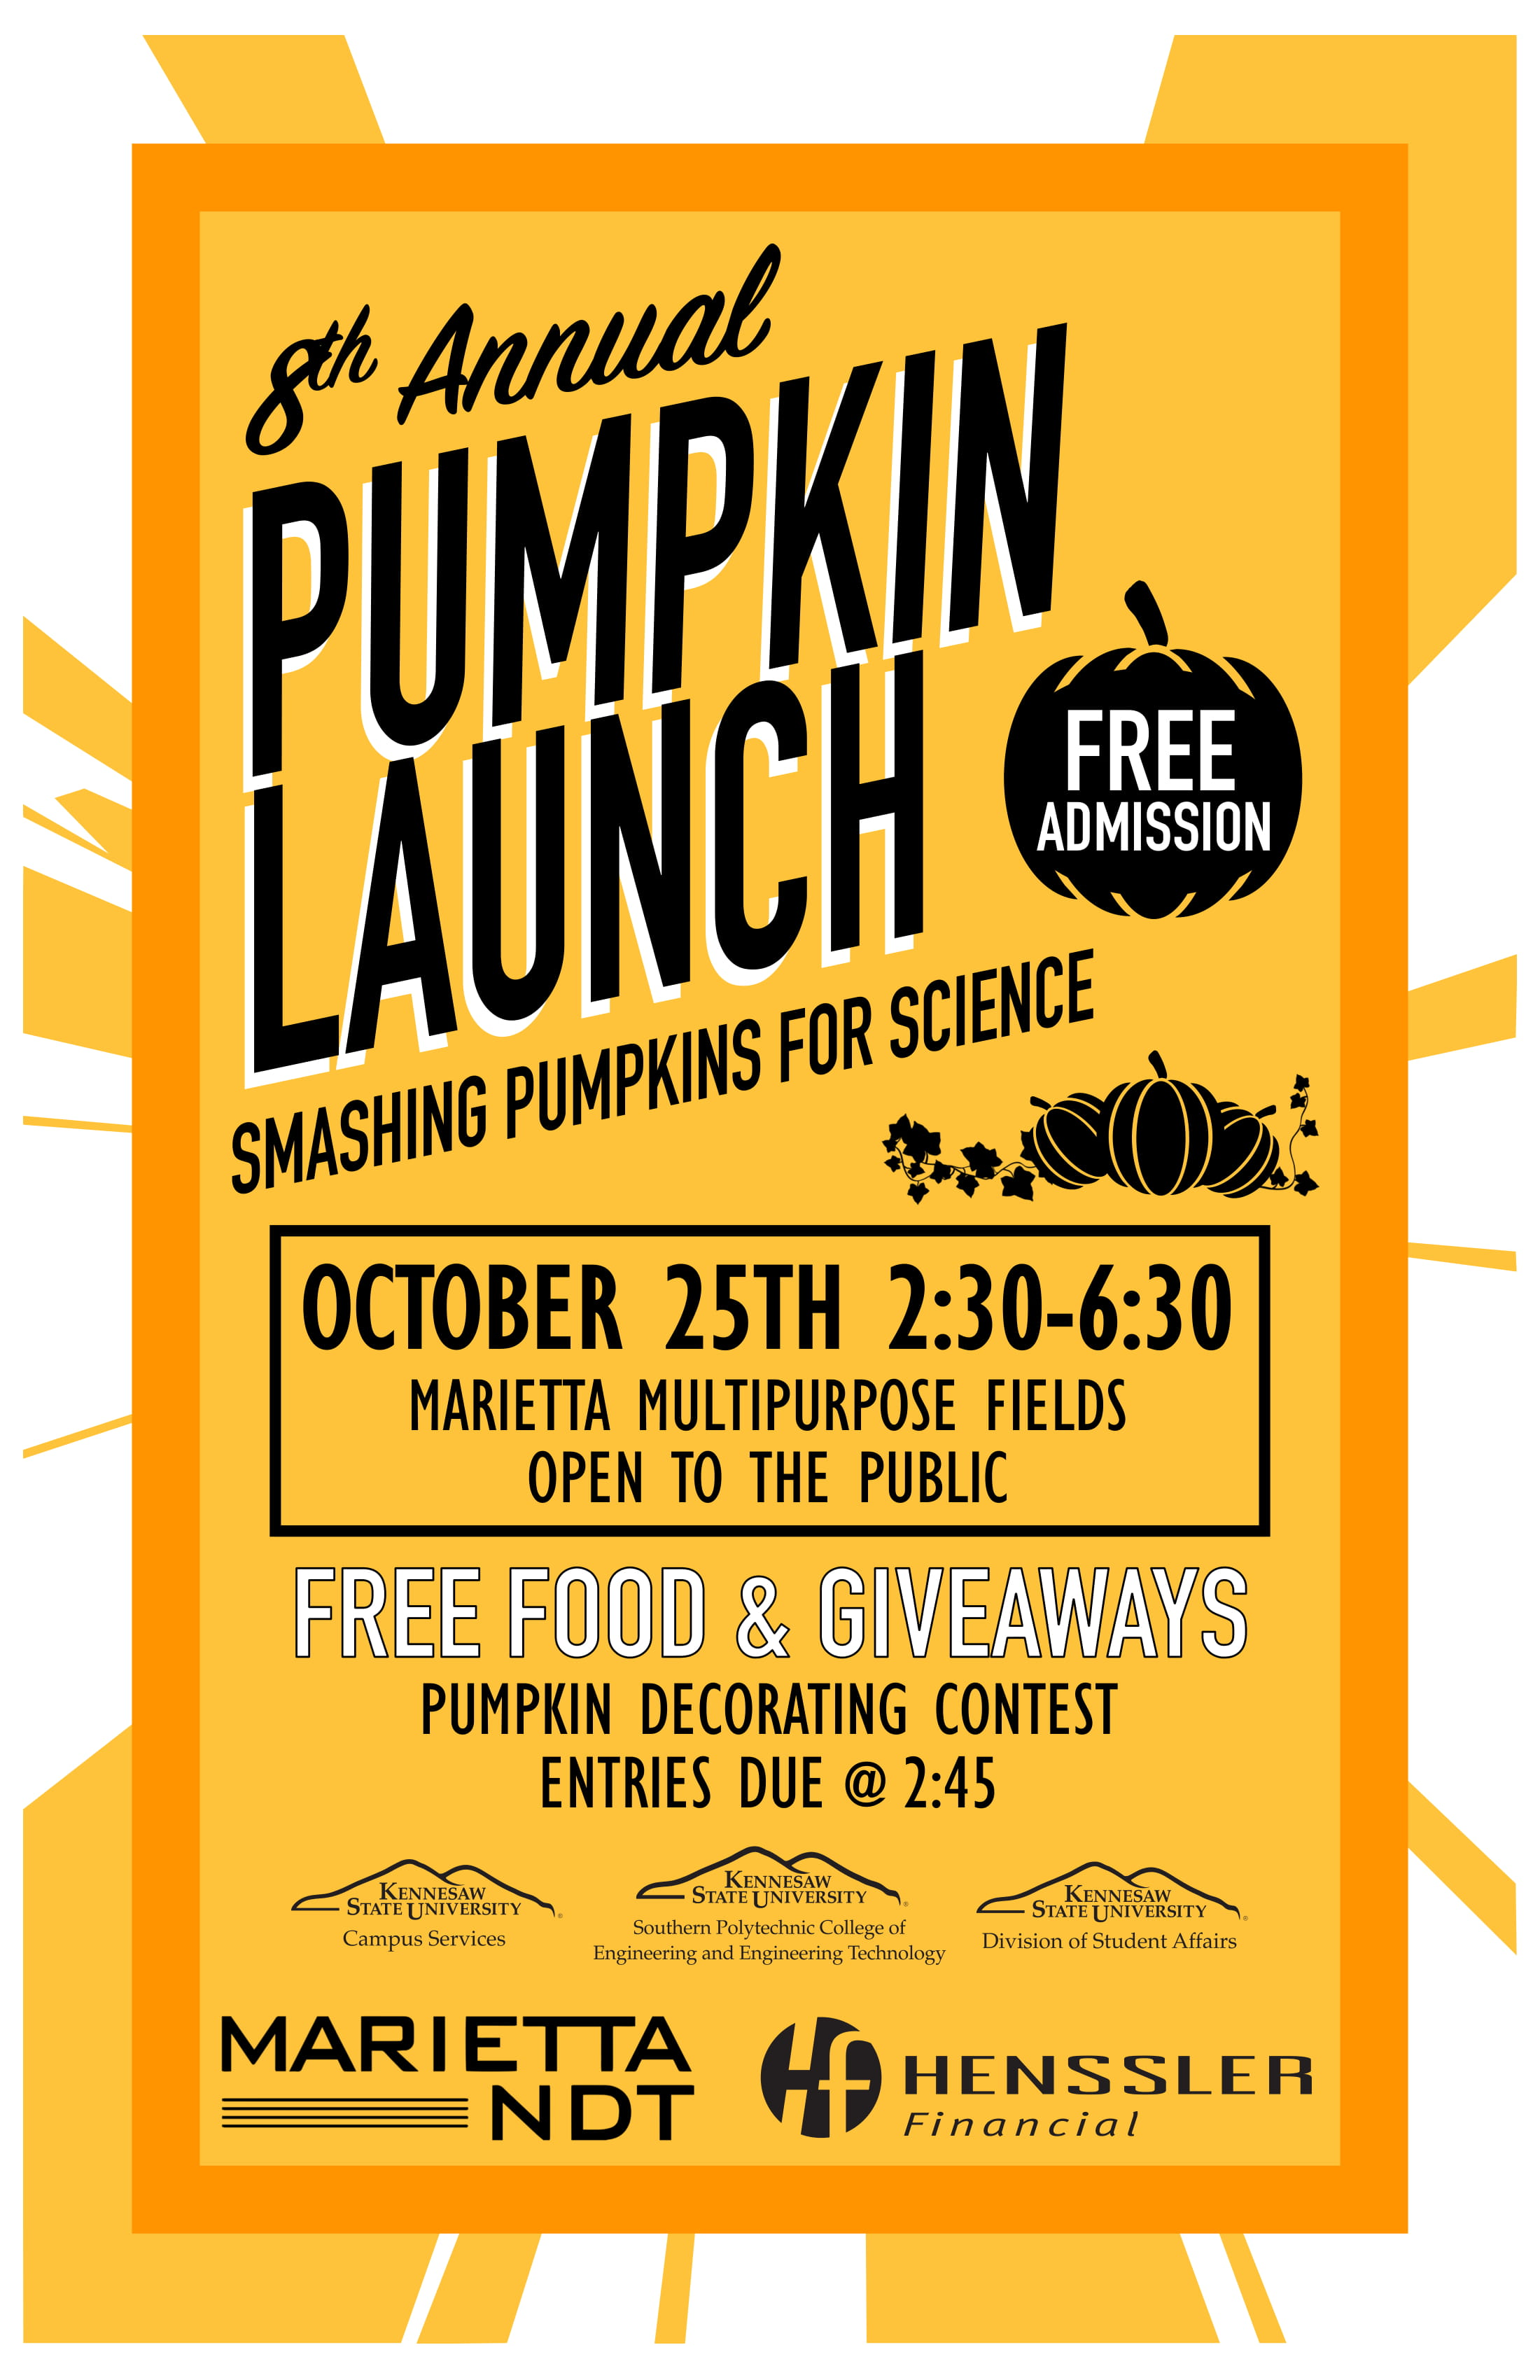 KSU 8th Annual Pumpkin Launch